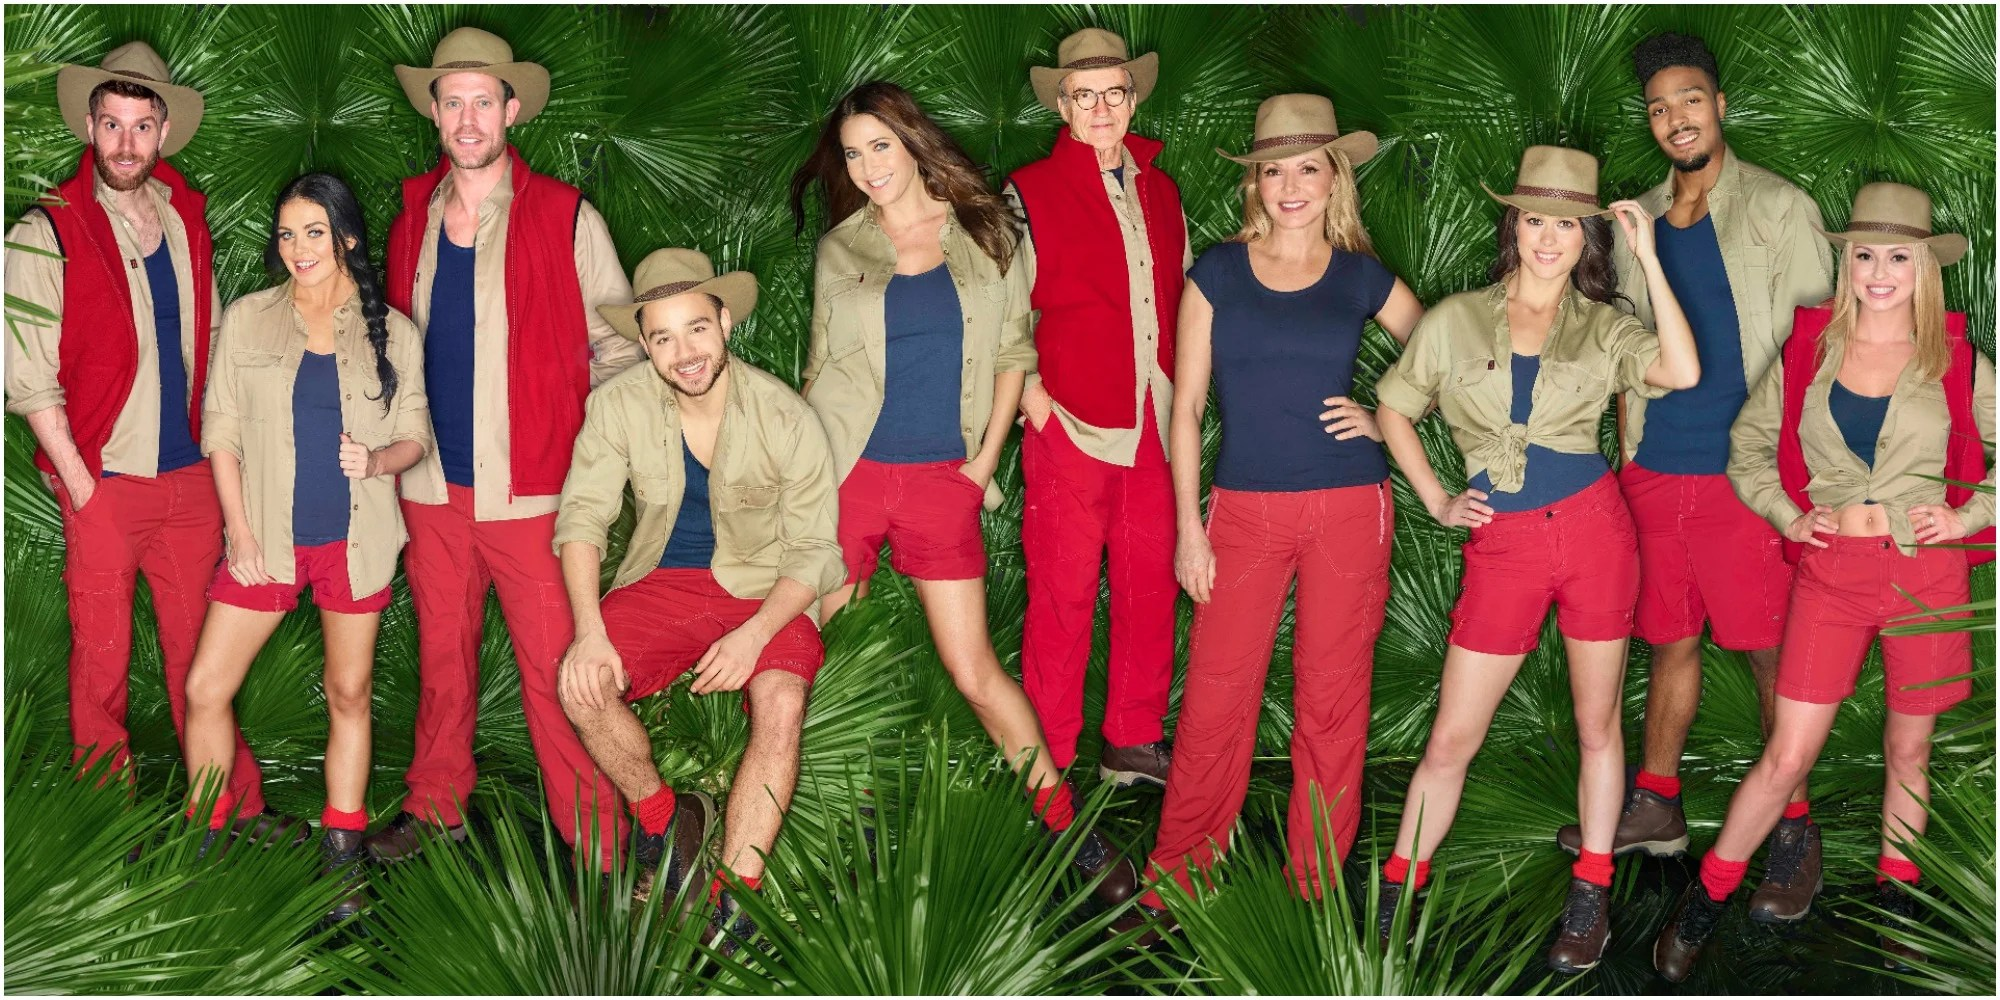 I m a Celebrity 2016 line up revealed by ITV  Ola Jordan  Carol     I m a Celebrity 2016 line up revealed by ITV  Ola Jordan  Carol Vorderman   and Scarlet Moffat heading to the jungle   The Independent